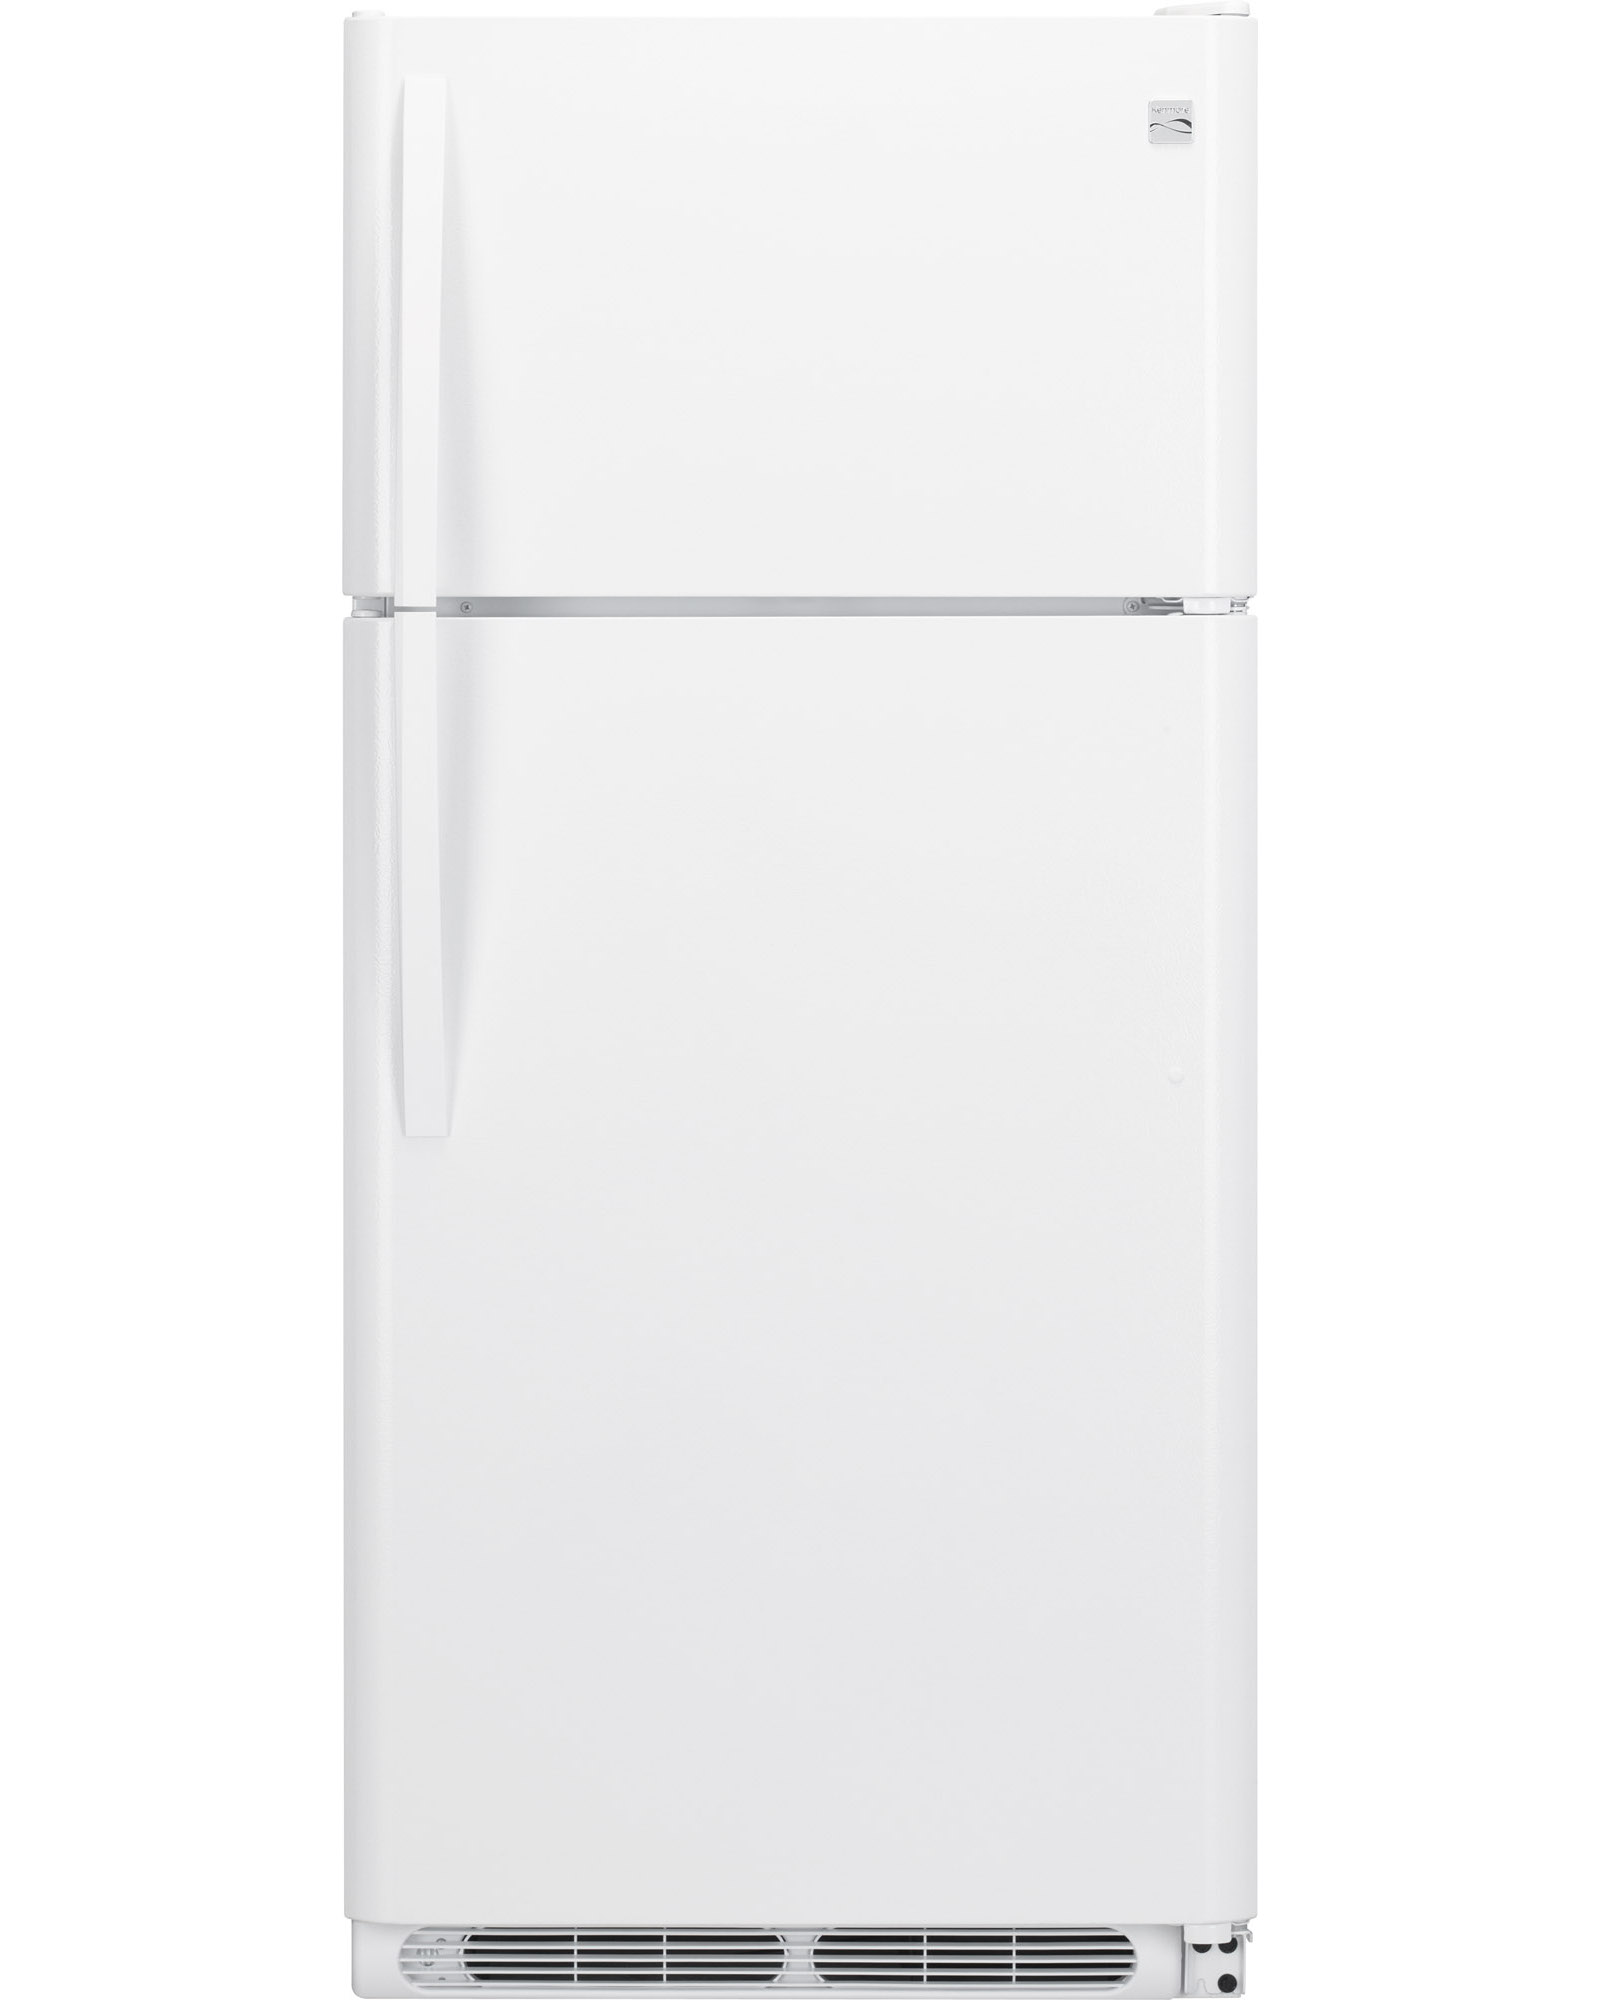 Kenmore 70502 18 cu. ft. Top Freezer Refrigerator - White